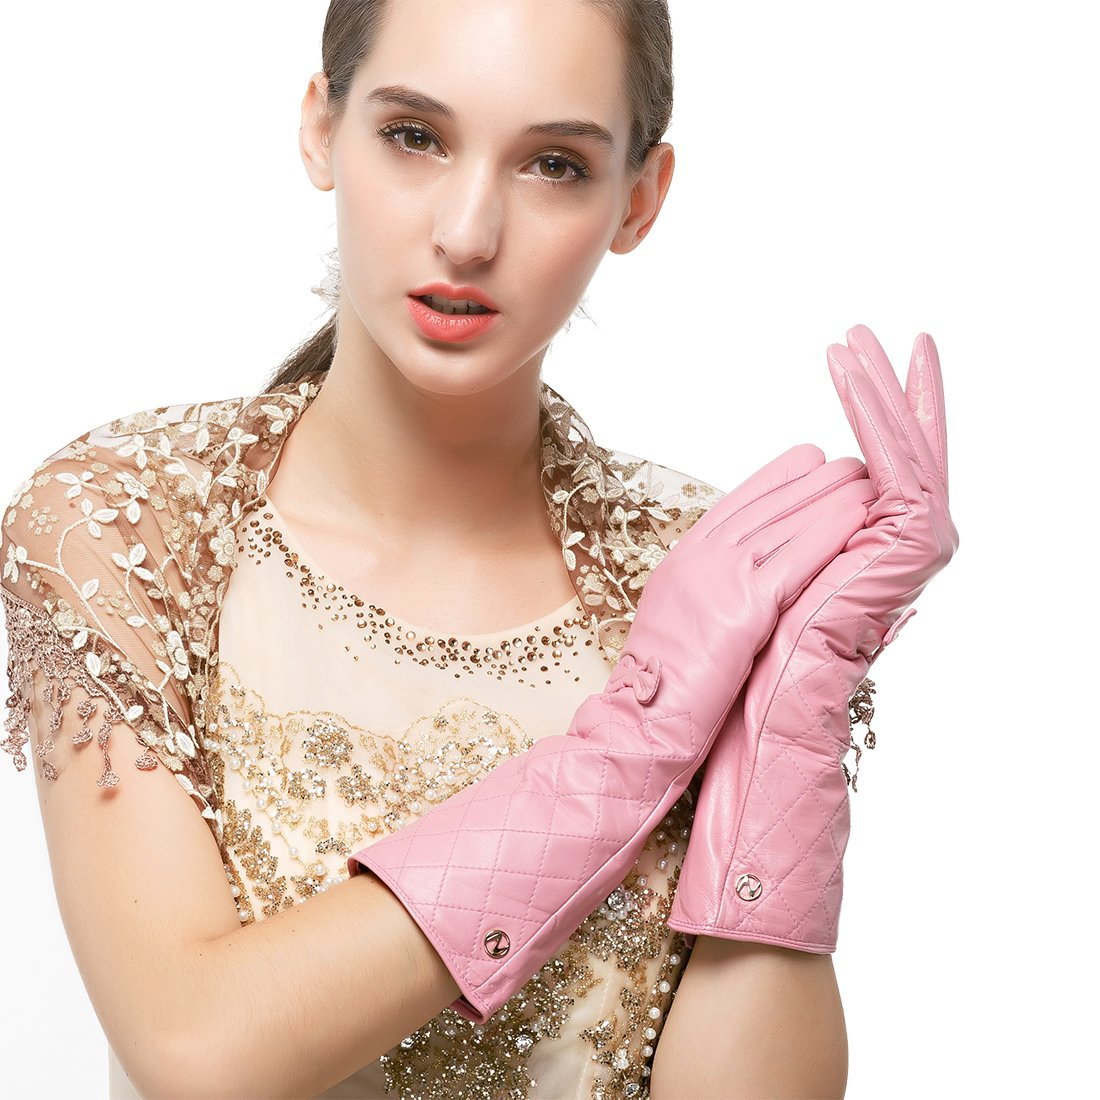 Nappaglo Women's Winter Long Leather Gloves Genuine Nappa Leather Touchscreen Quilted Bow Party Mittens (L (Palm Girth:7.5''), Pink (Non-Touchscreen))